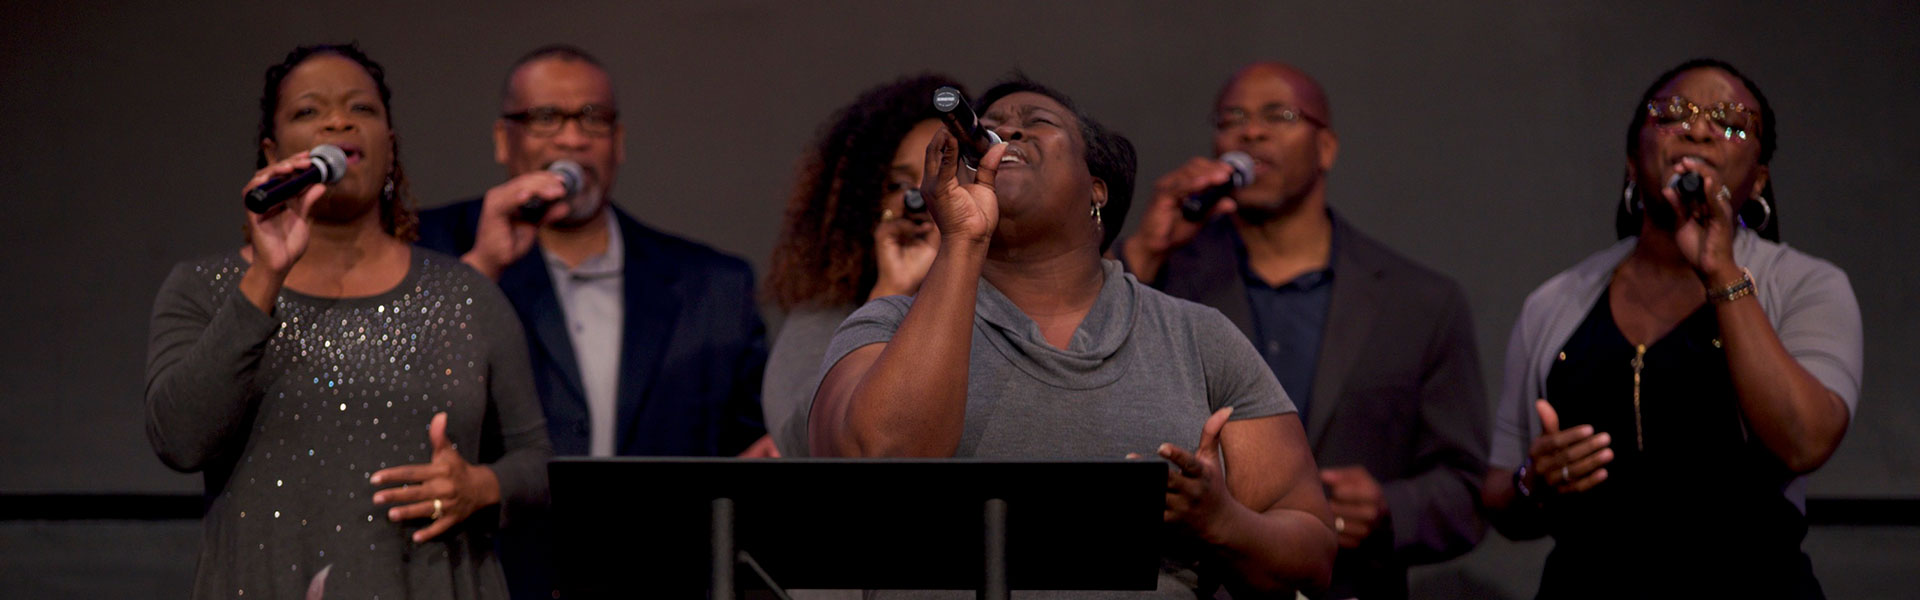 Truth Revealed International Ministries Praise and Worship